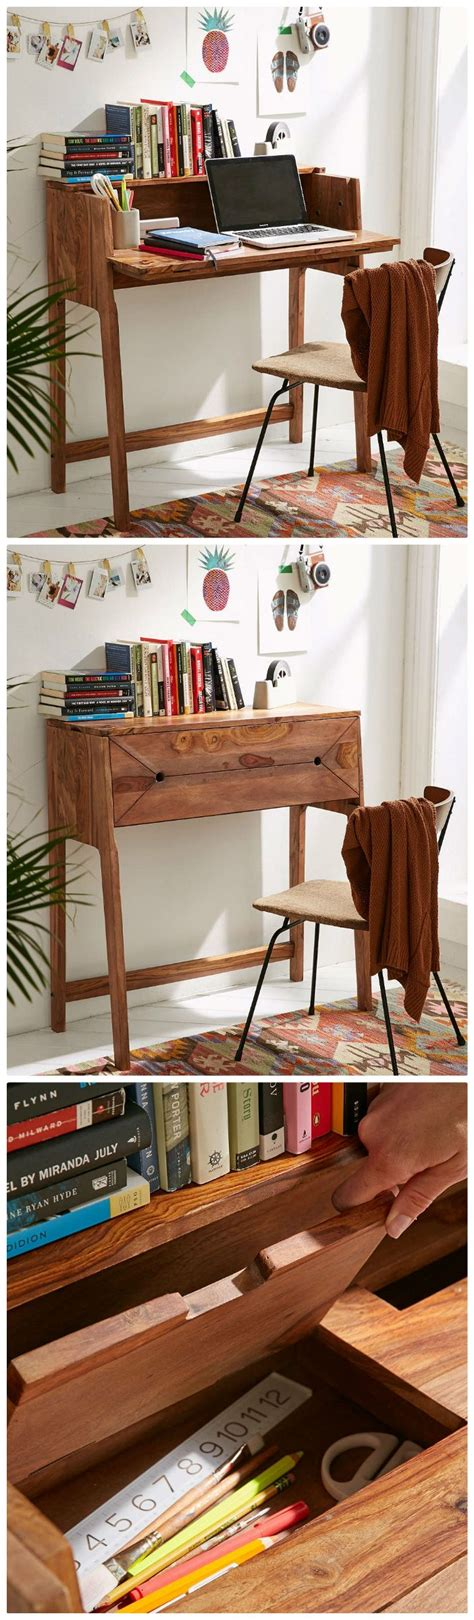 living spaces desk desk for small space living whitevan